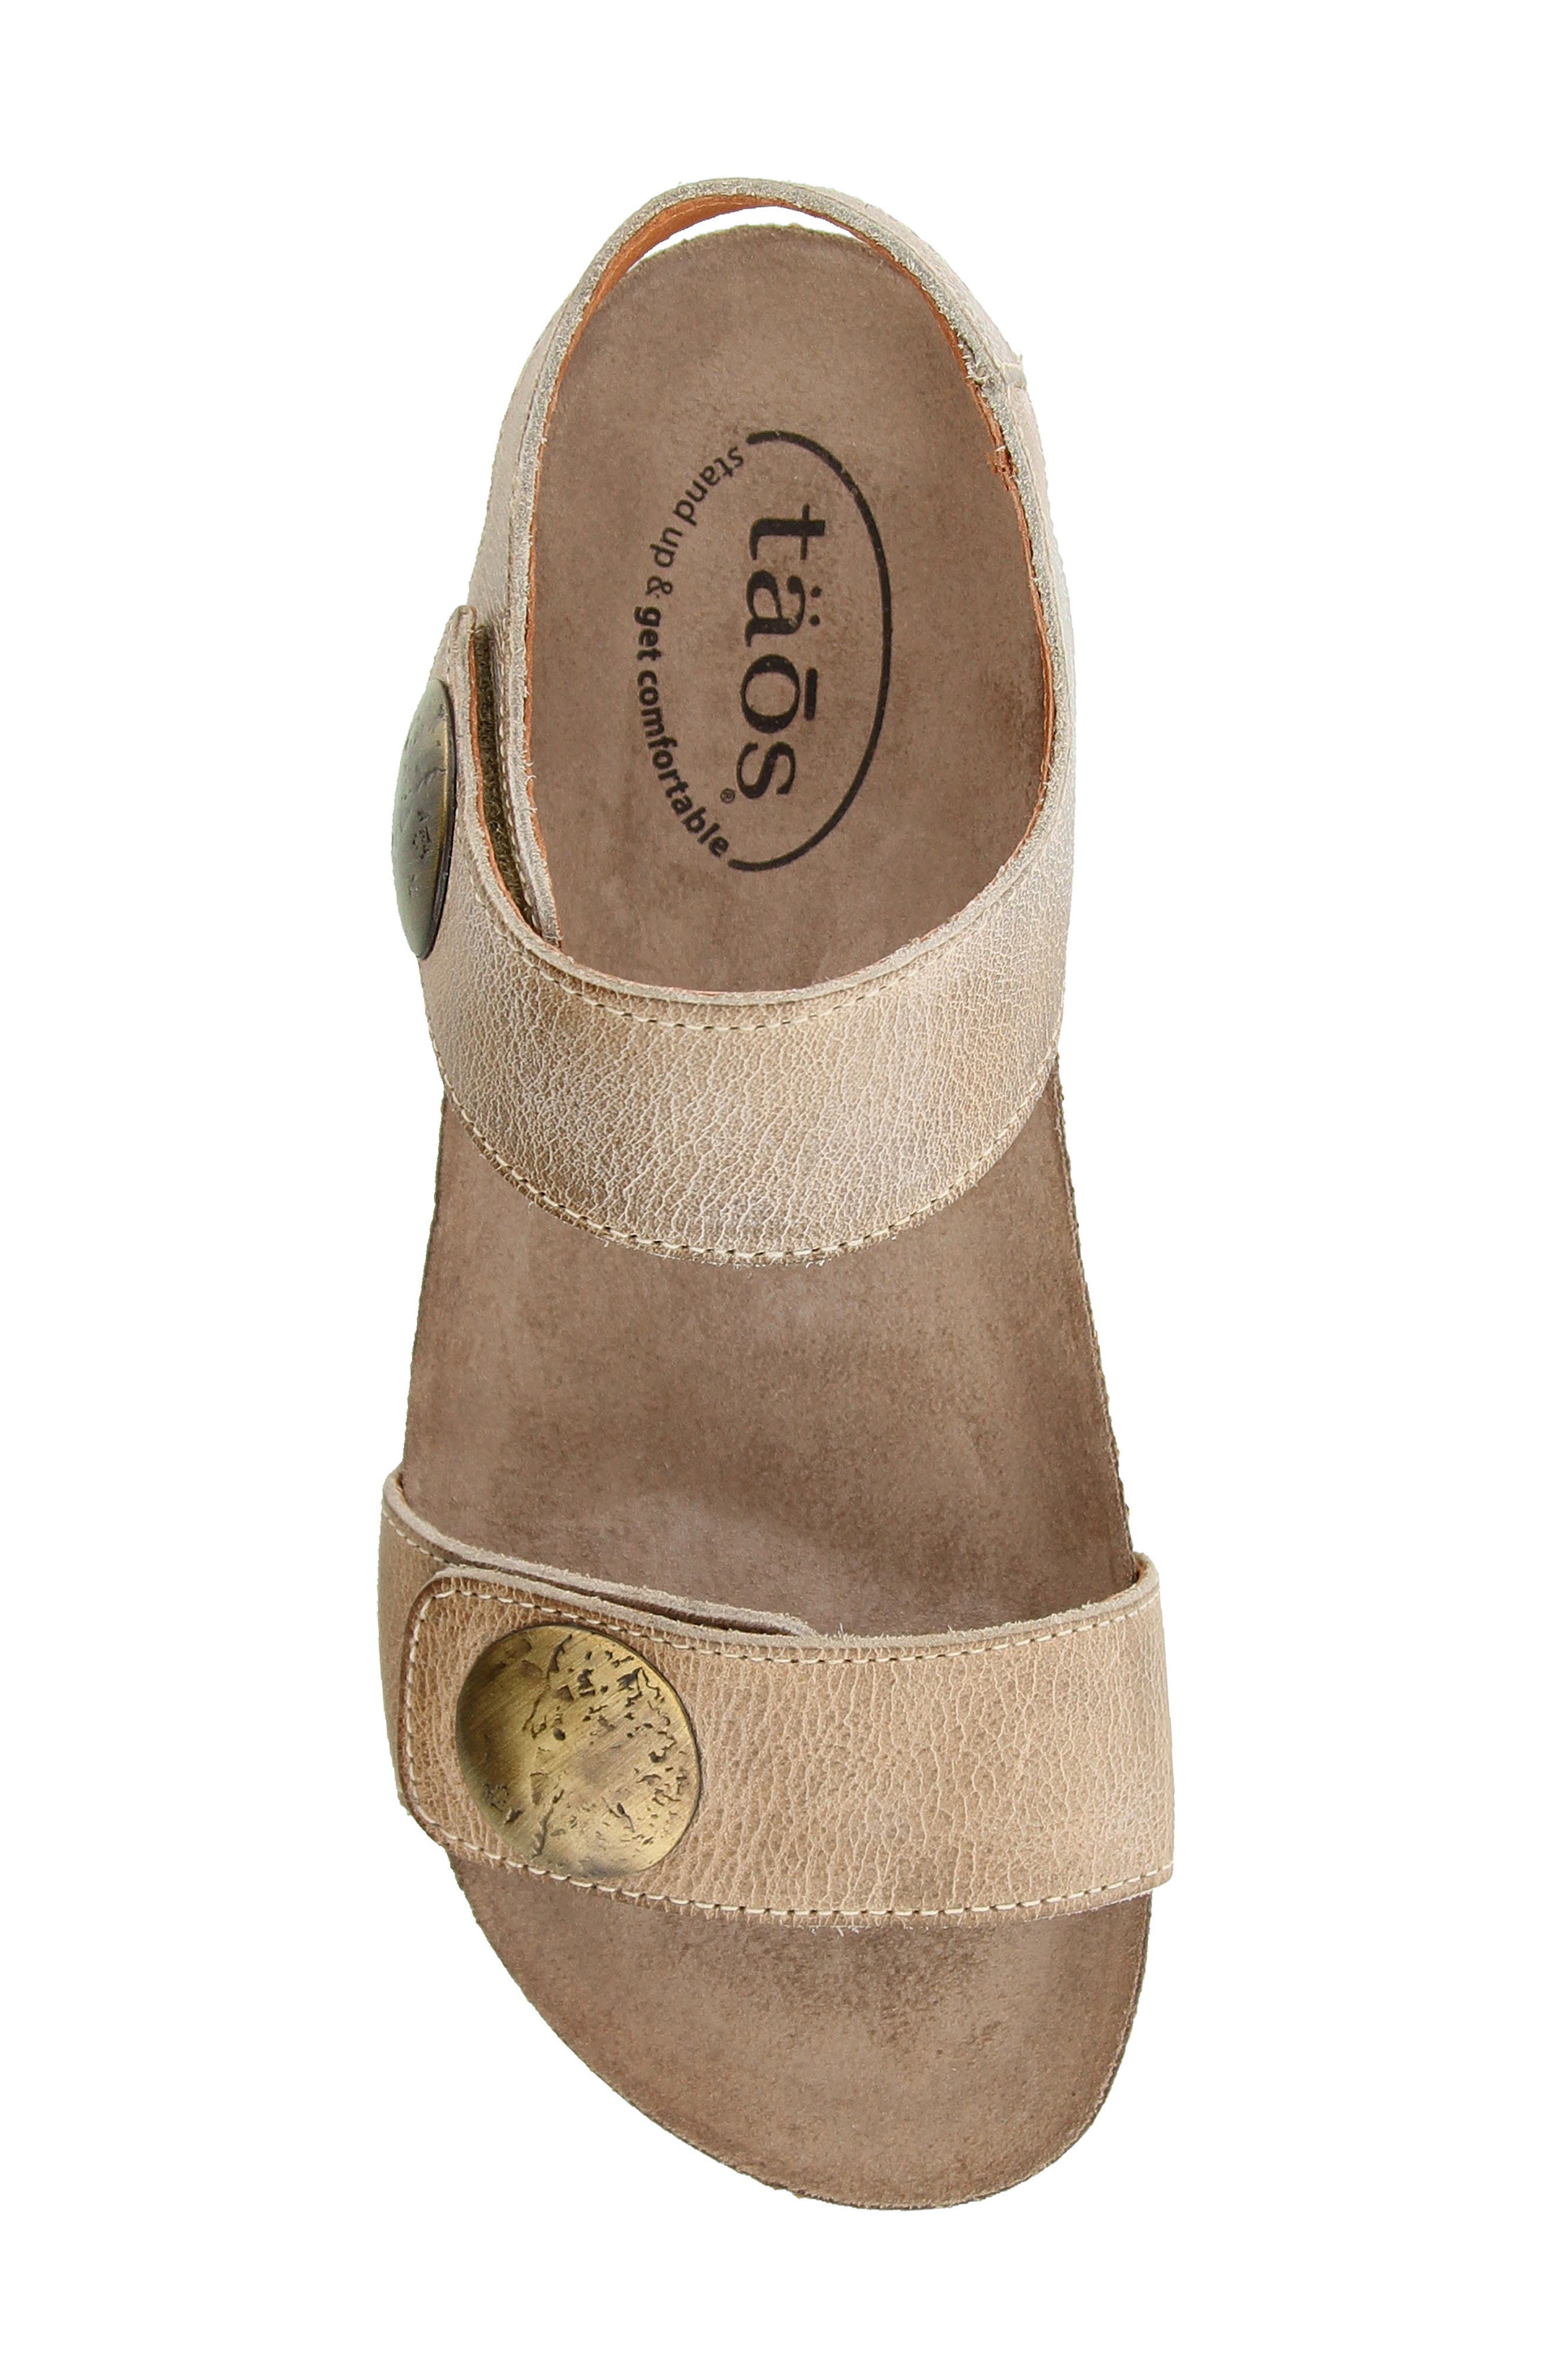 Luckie Sandal,                             Alternate thumbnail 4, color,                             Taupe Leather